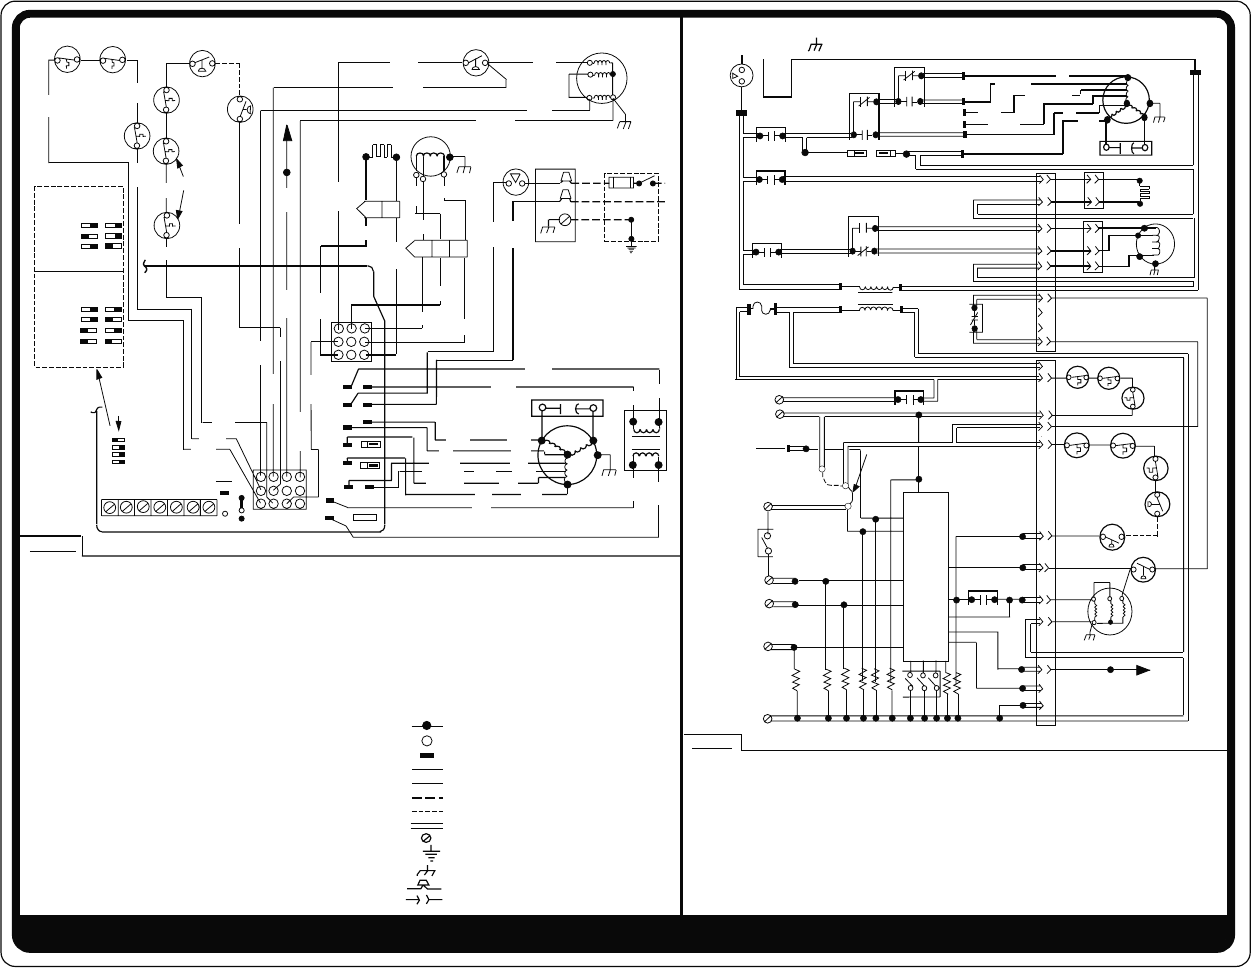 c2b73d22 c45f 43df a574 b6e707ea0cc7 bg8 american standard gas furnace wiring diagram model tvs120,standard  at webbmarketing.co